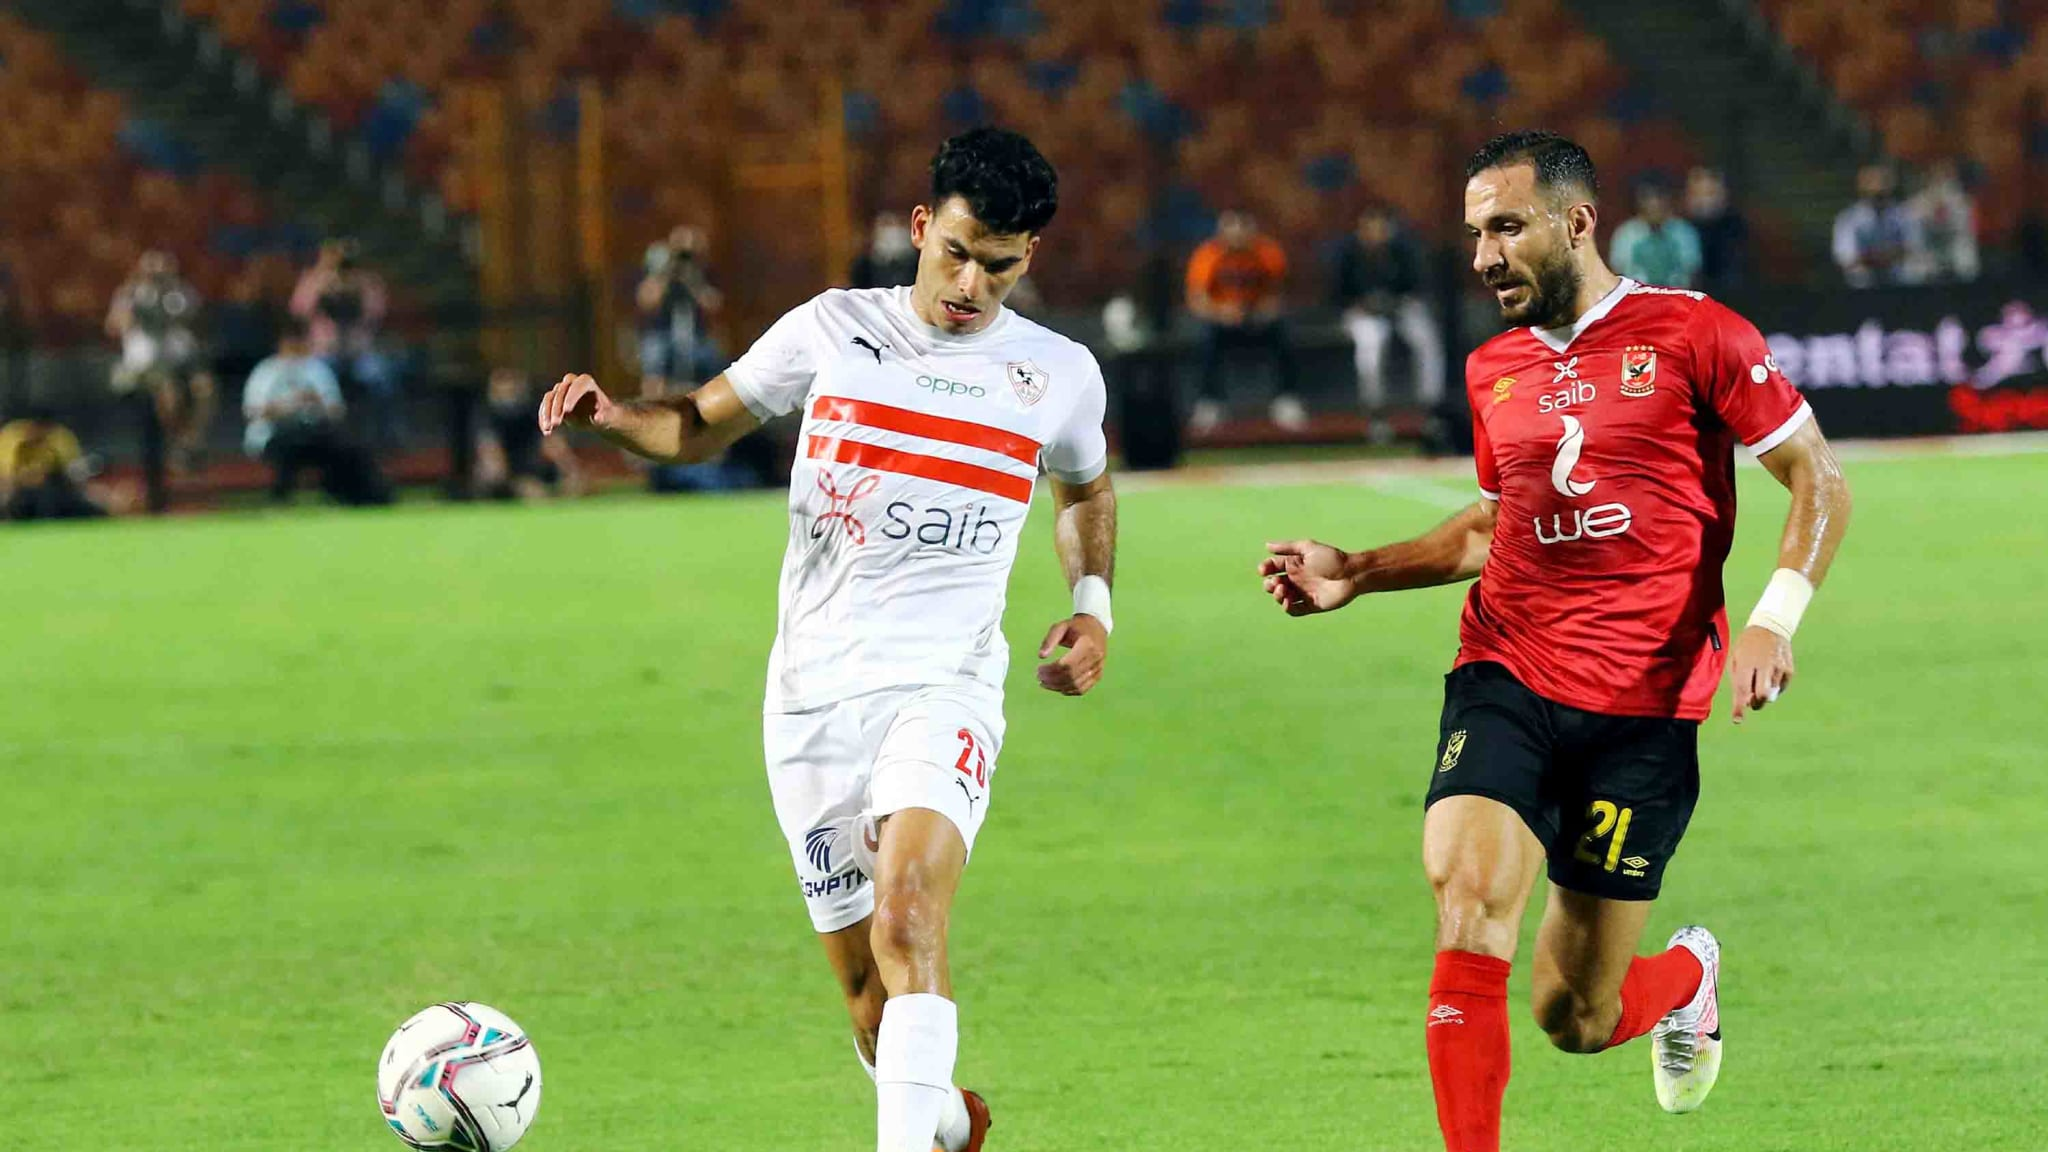 Al-Ahly and Zamalek competing for the CAF Champions League